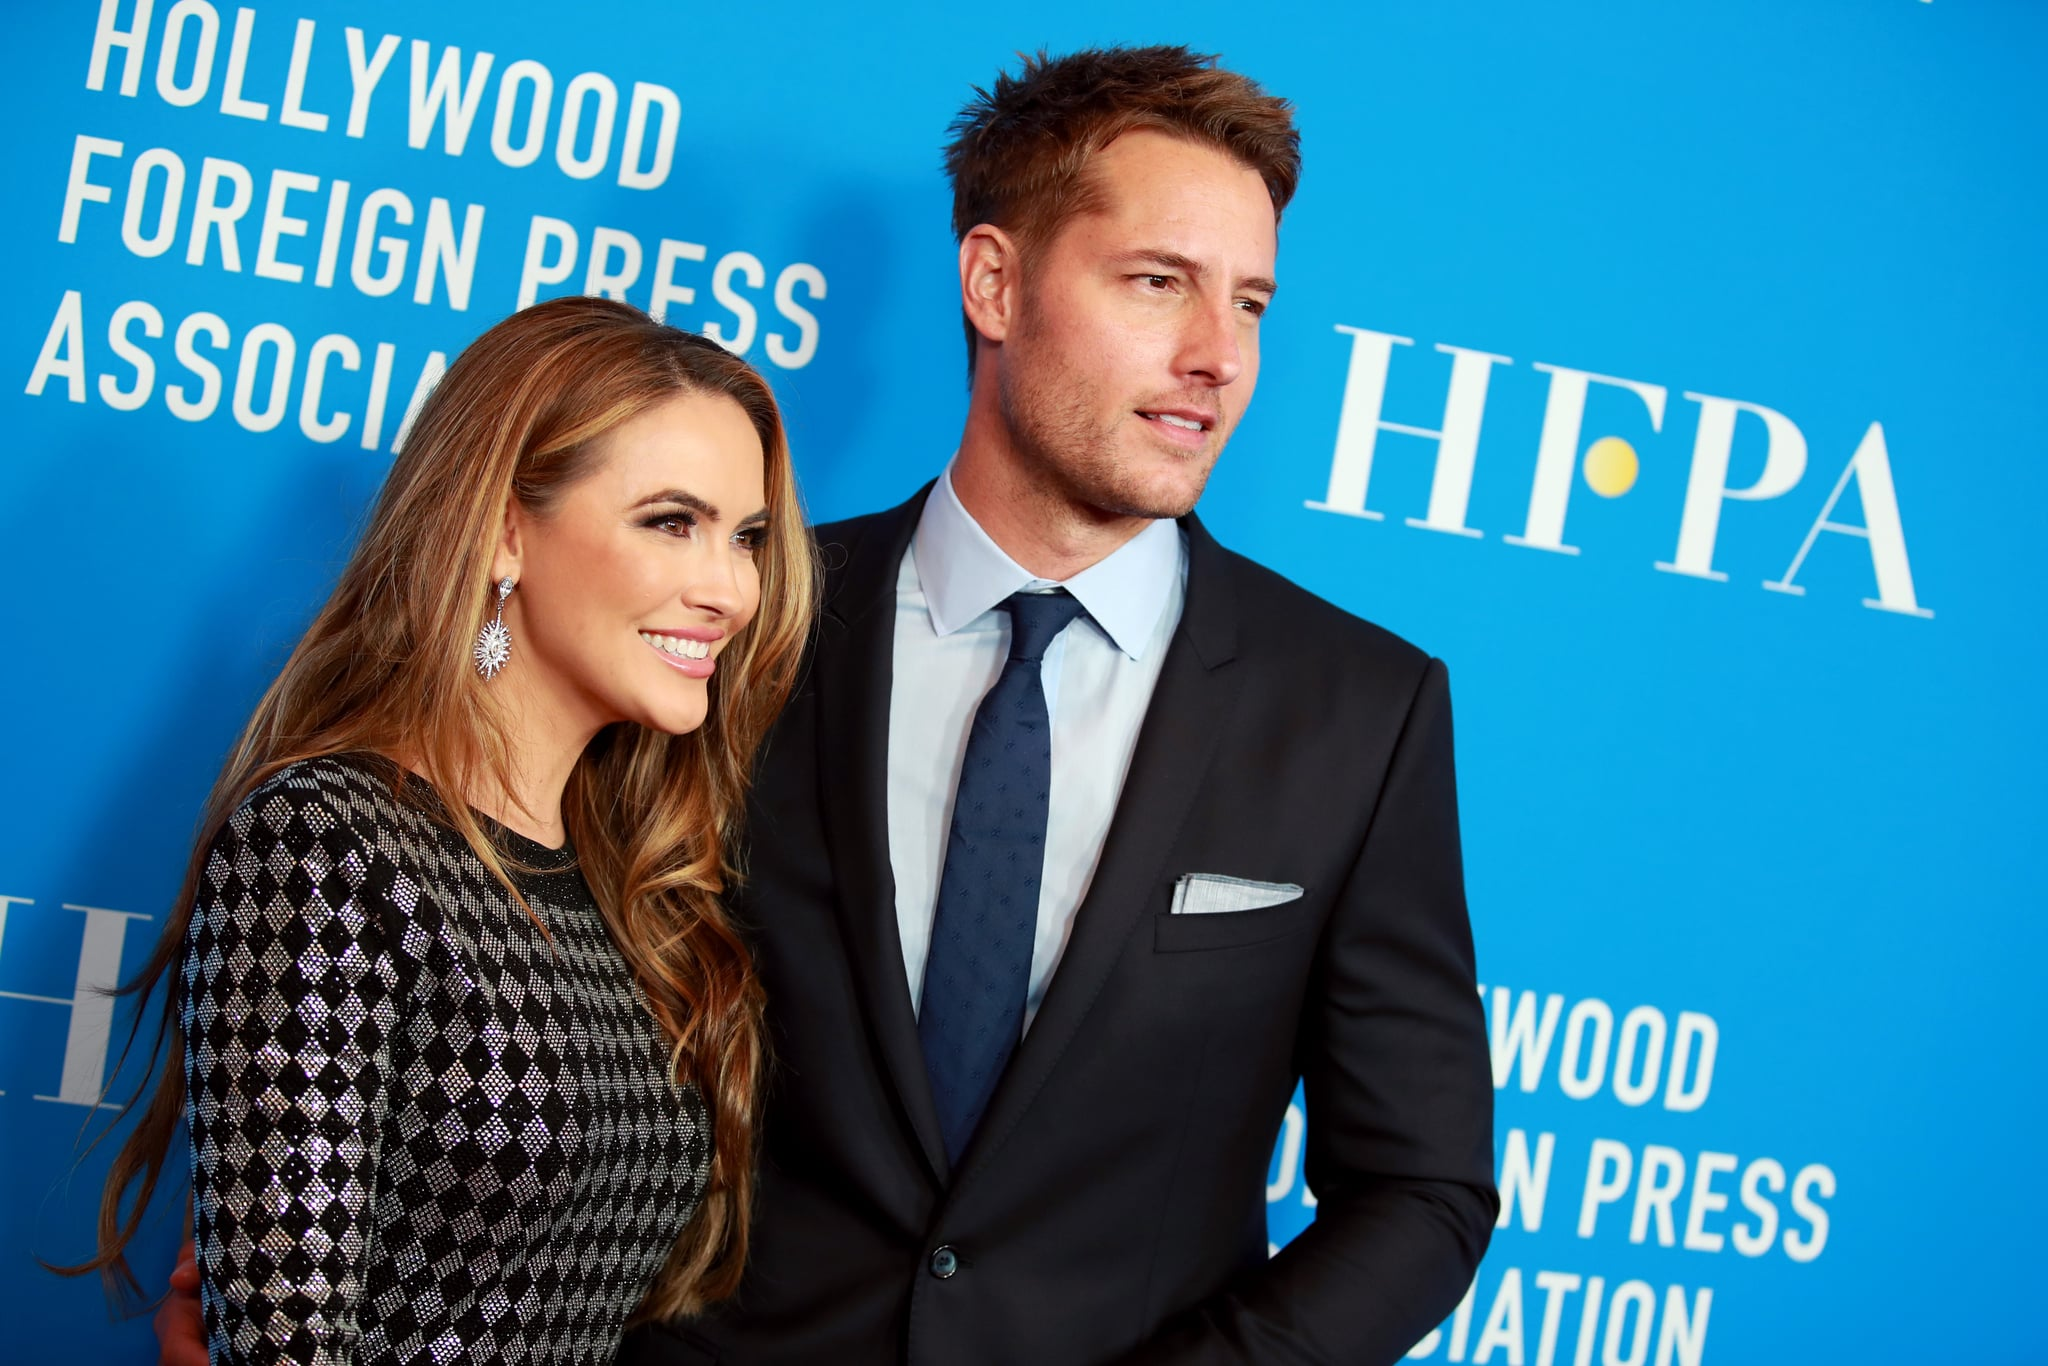 BEVERLY HILLS, CALIFORNIA - JULY 31: (L-R) Chrishell Hartley and Justin Hartley attend the Hollywood Foreign Press Association's Annual Grants Banquet at Regent Beverly Wilshire Hotel on July 31, 2019 in Beverly Hills, California. (Photo by Rich Fury/Getty Images)